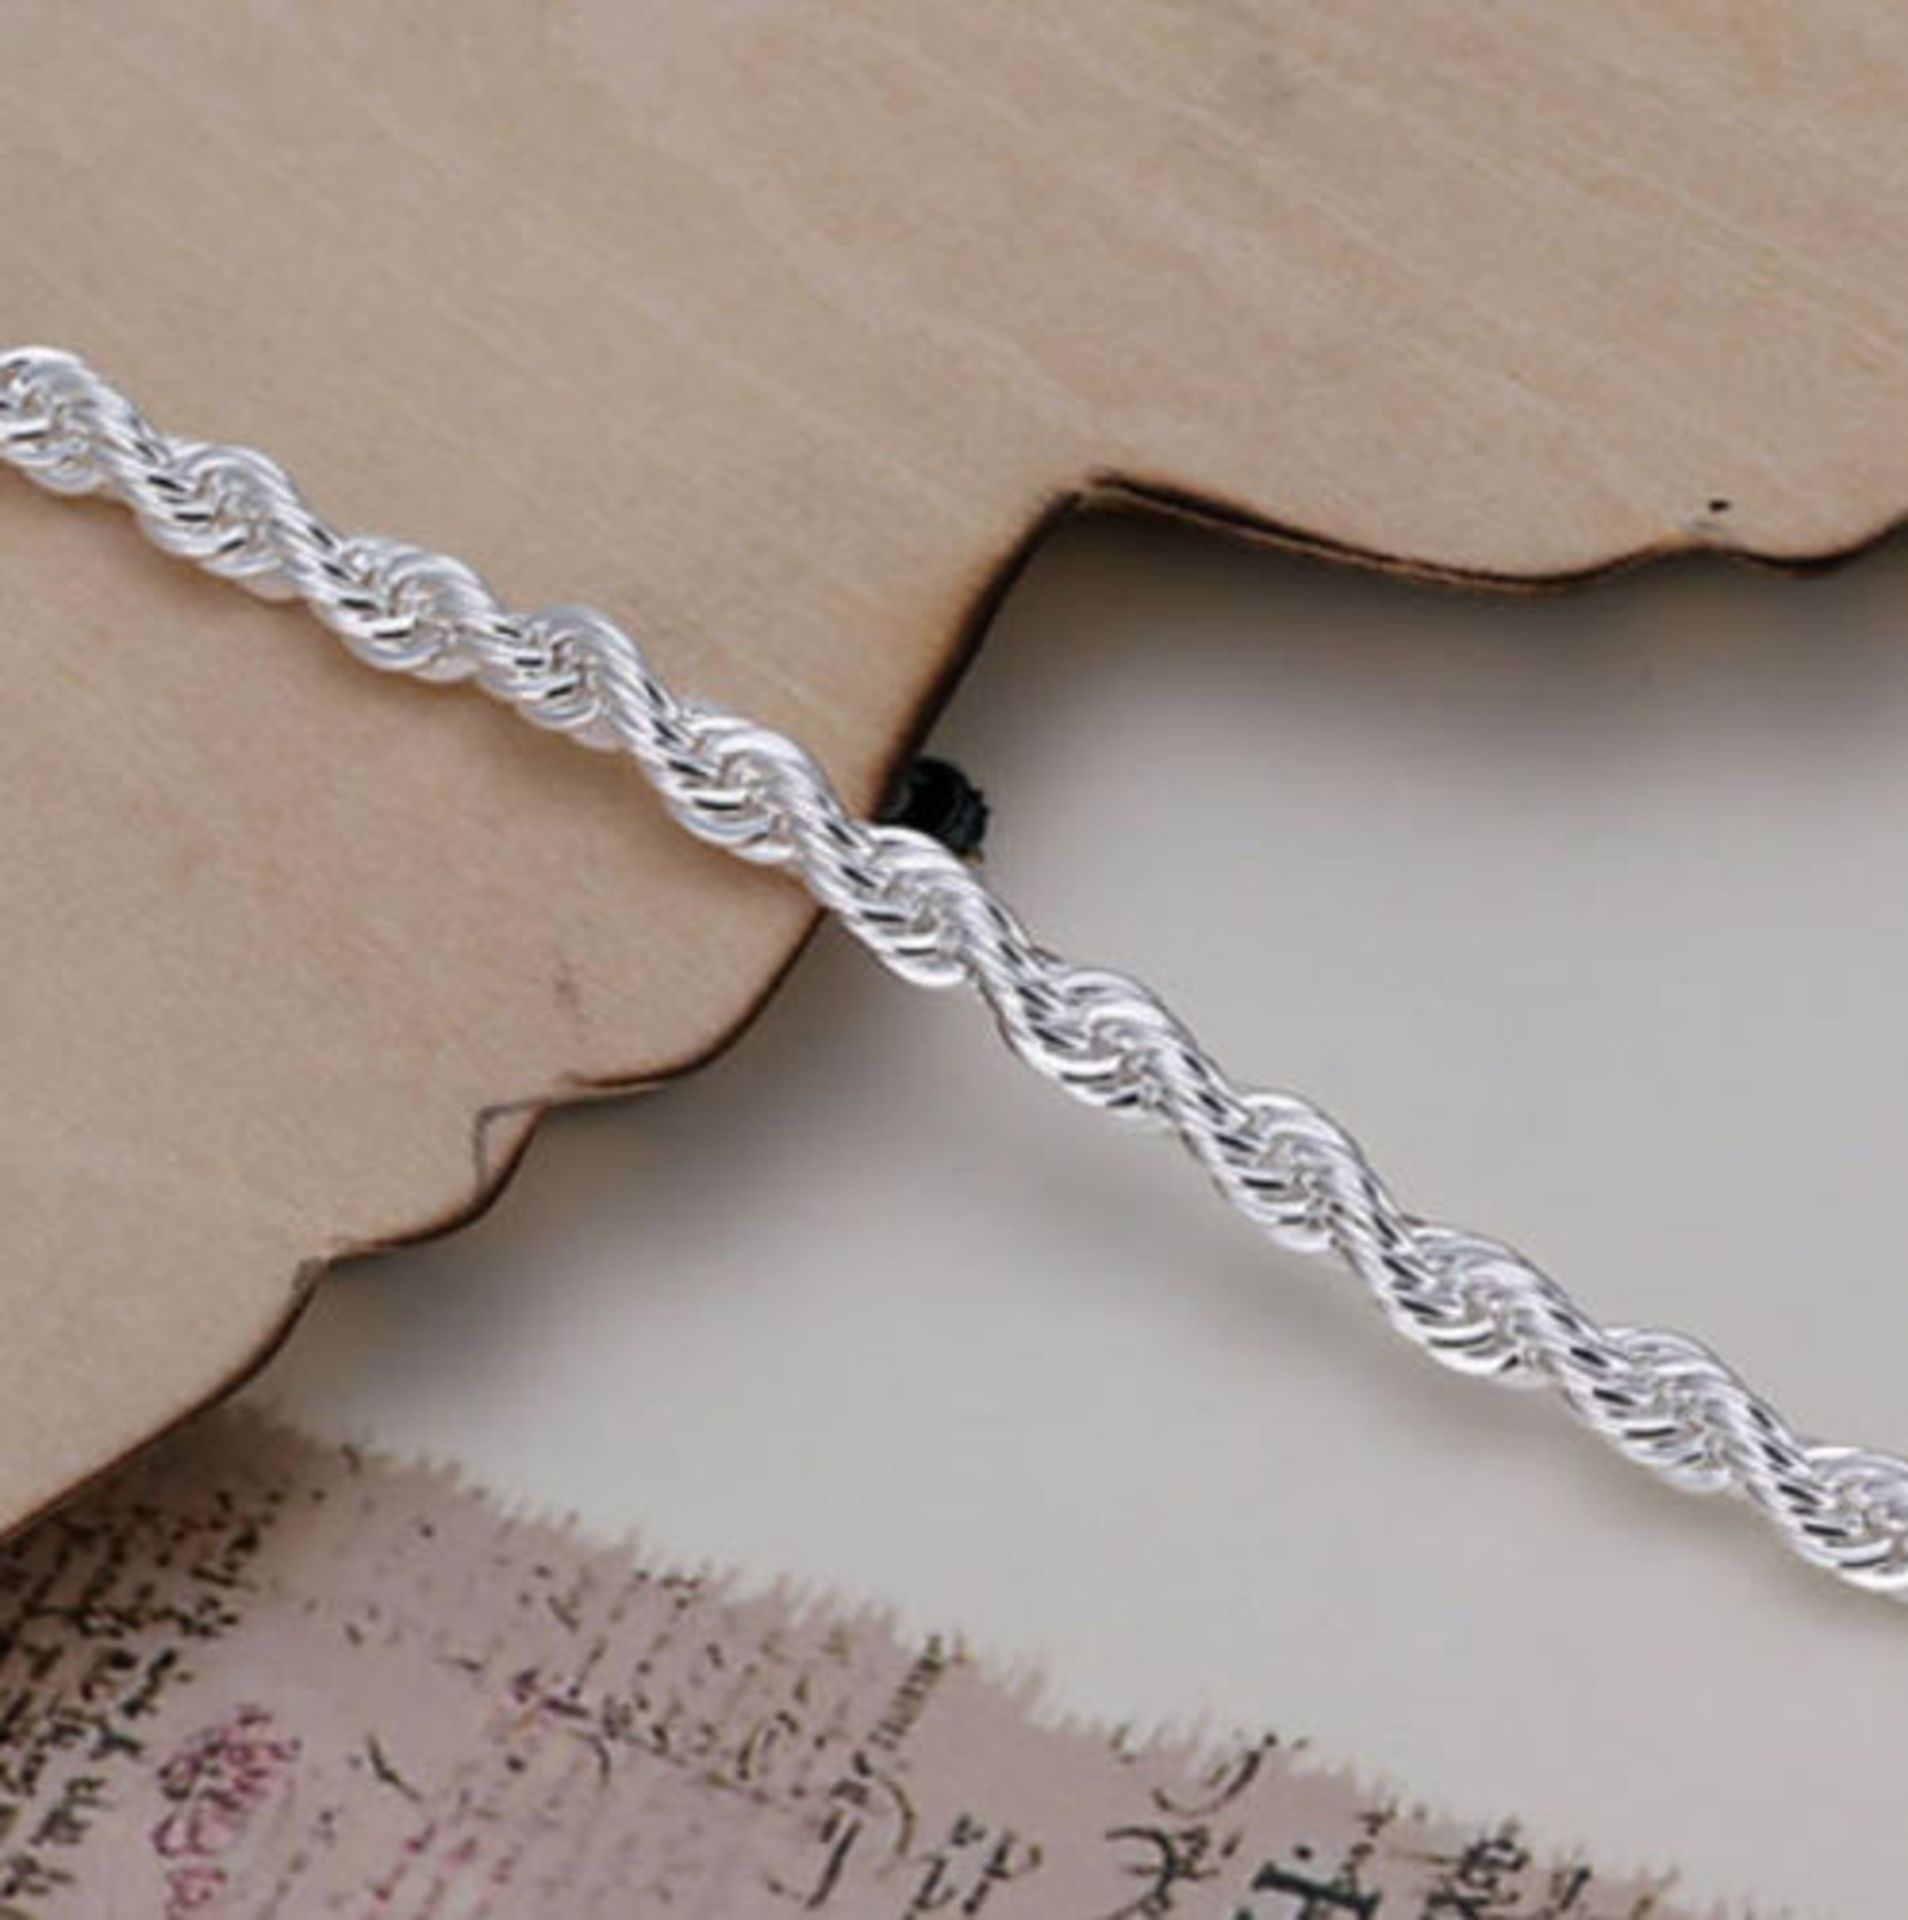 925 Sterling Silver Plated Twisted Rope Bracelet 3mm Thick Chain Link *NO VAT* - Image 4 of 4